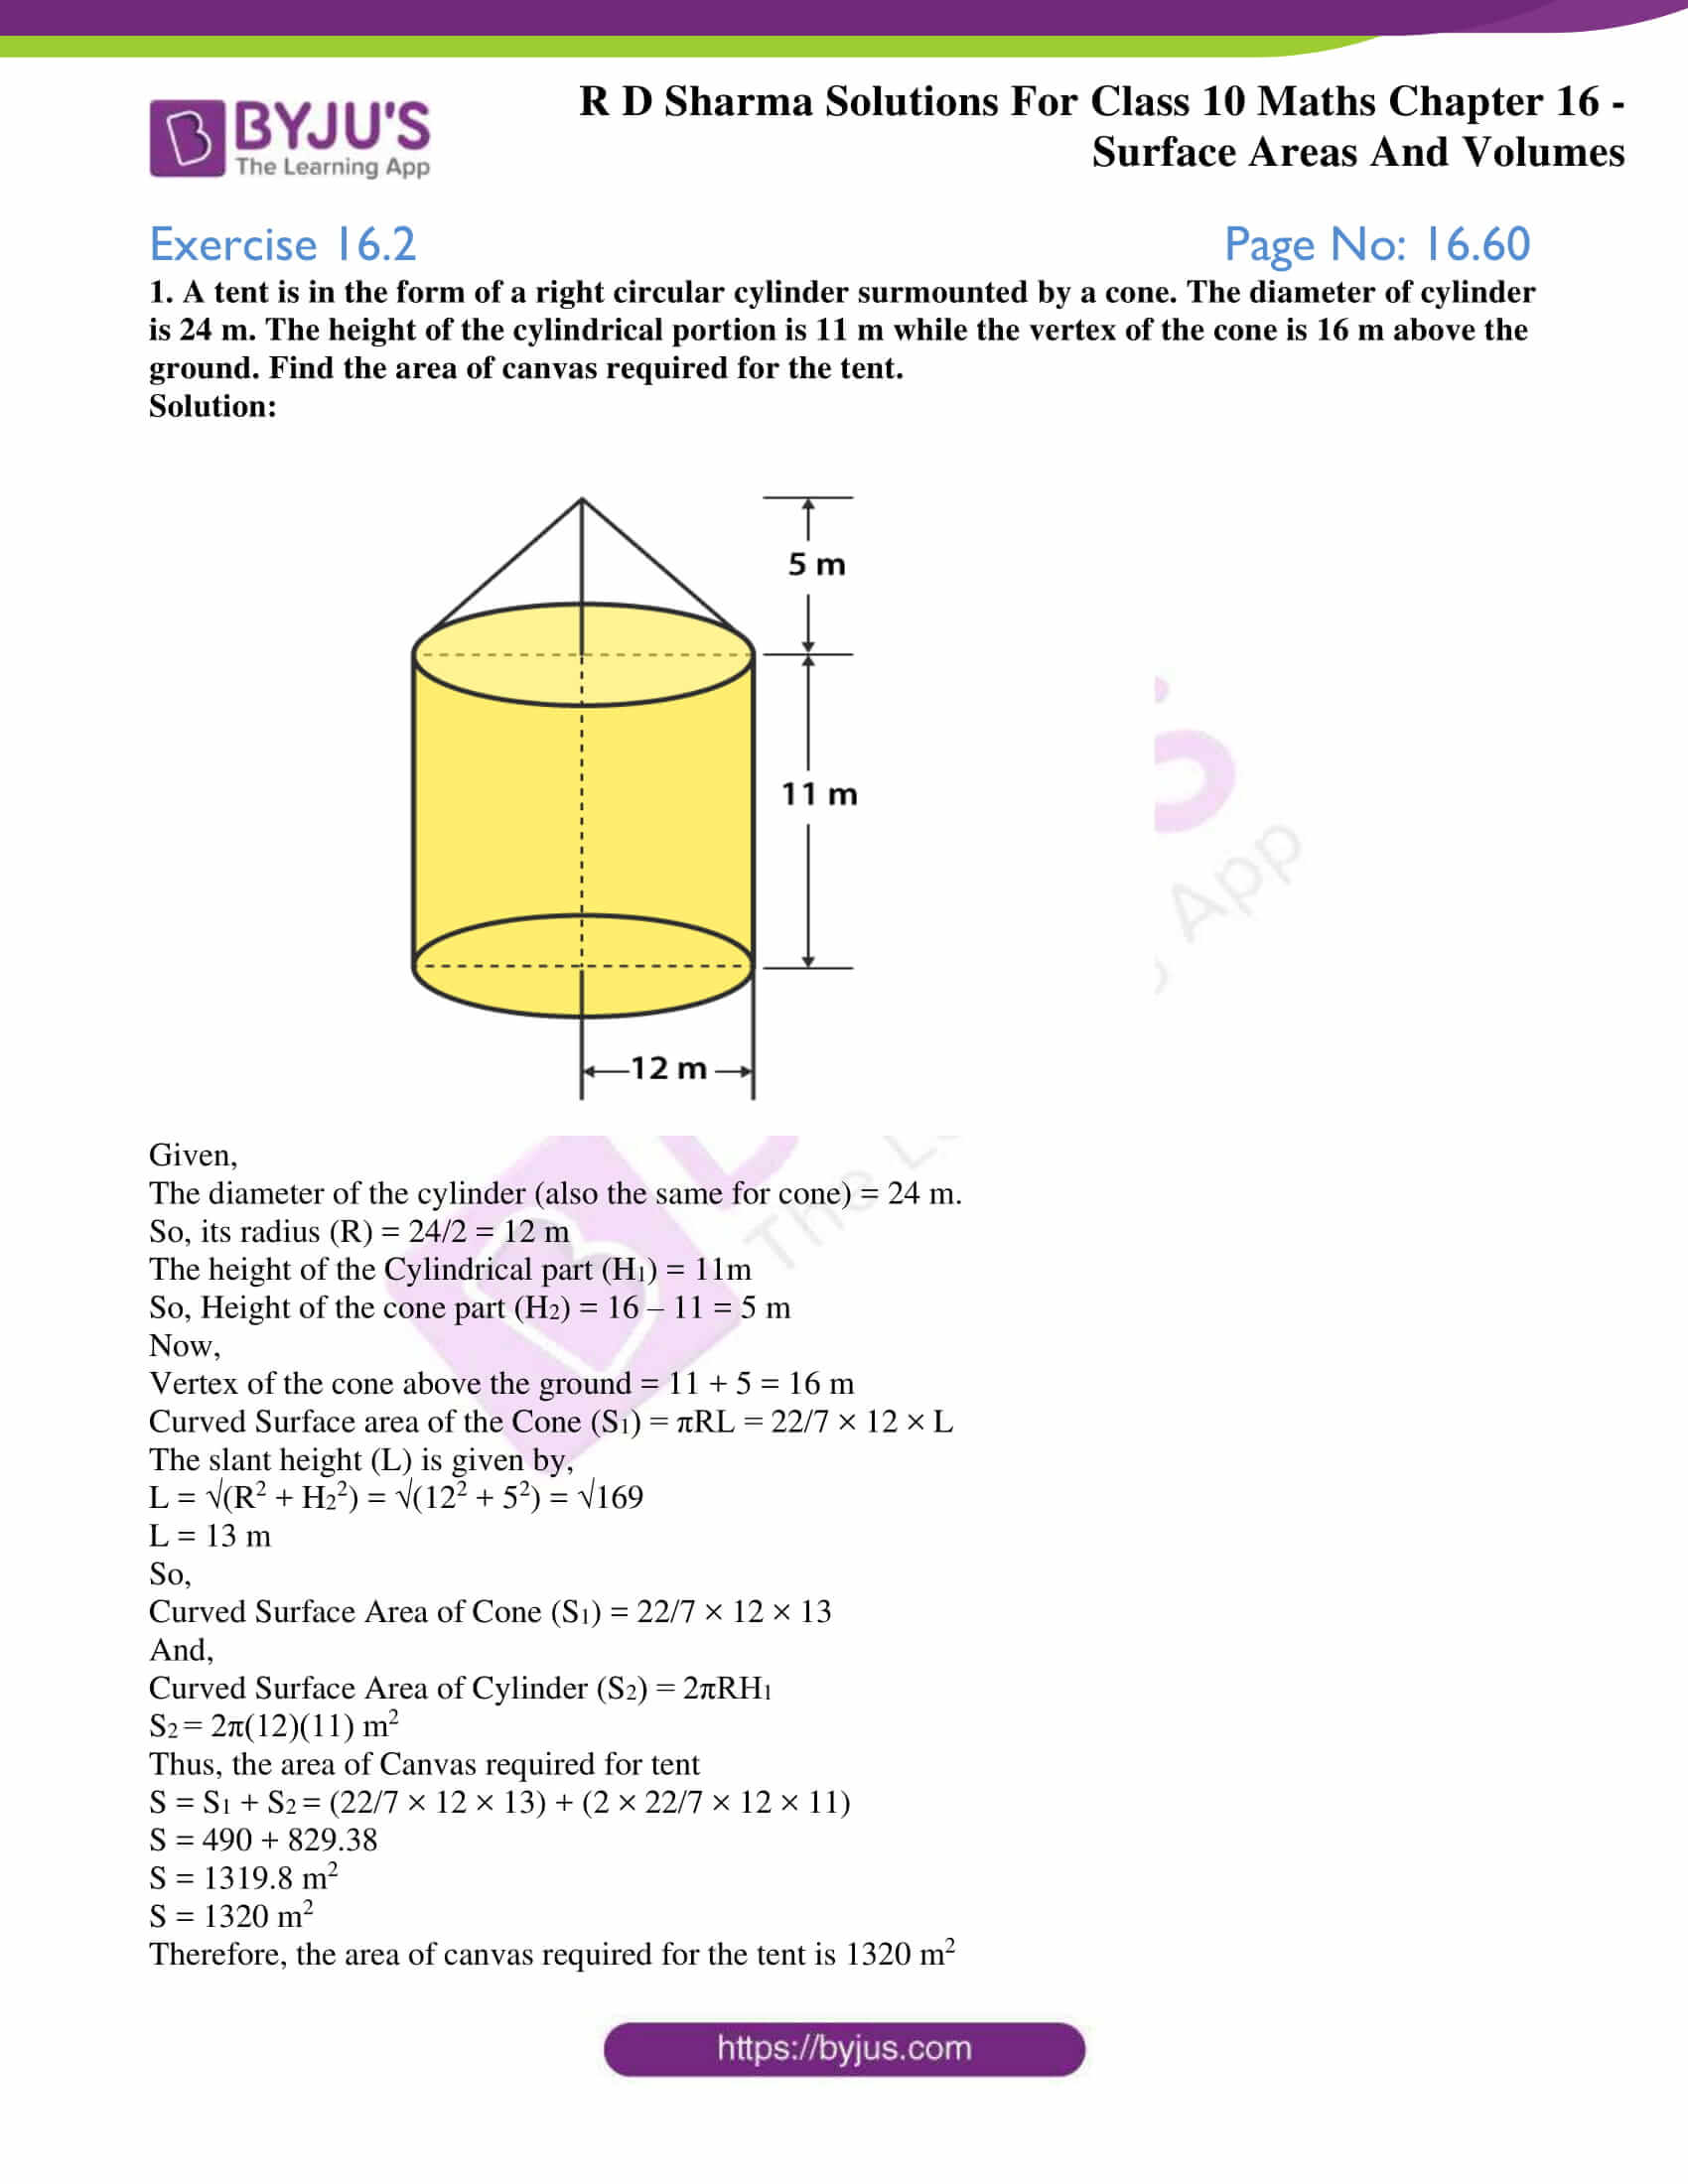 rd sharma solutions class 10 chapter 16 exercise 2